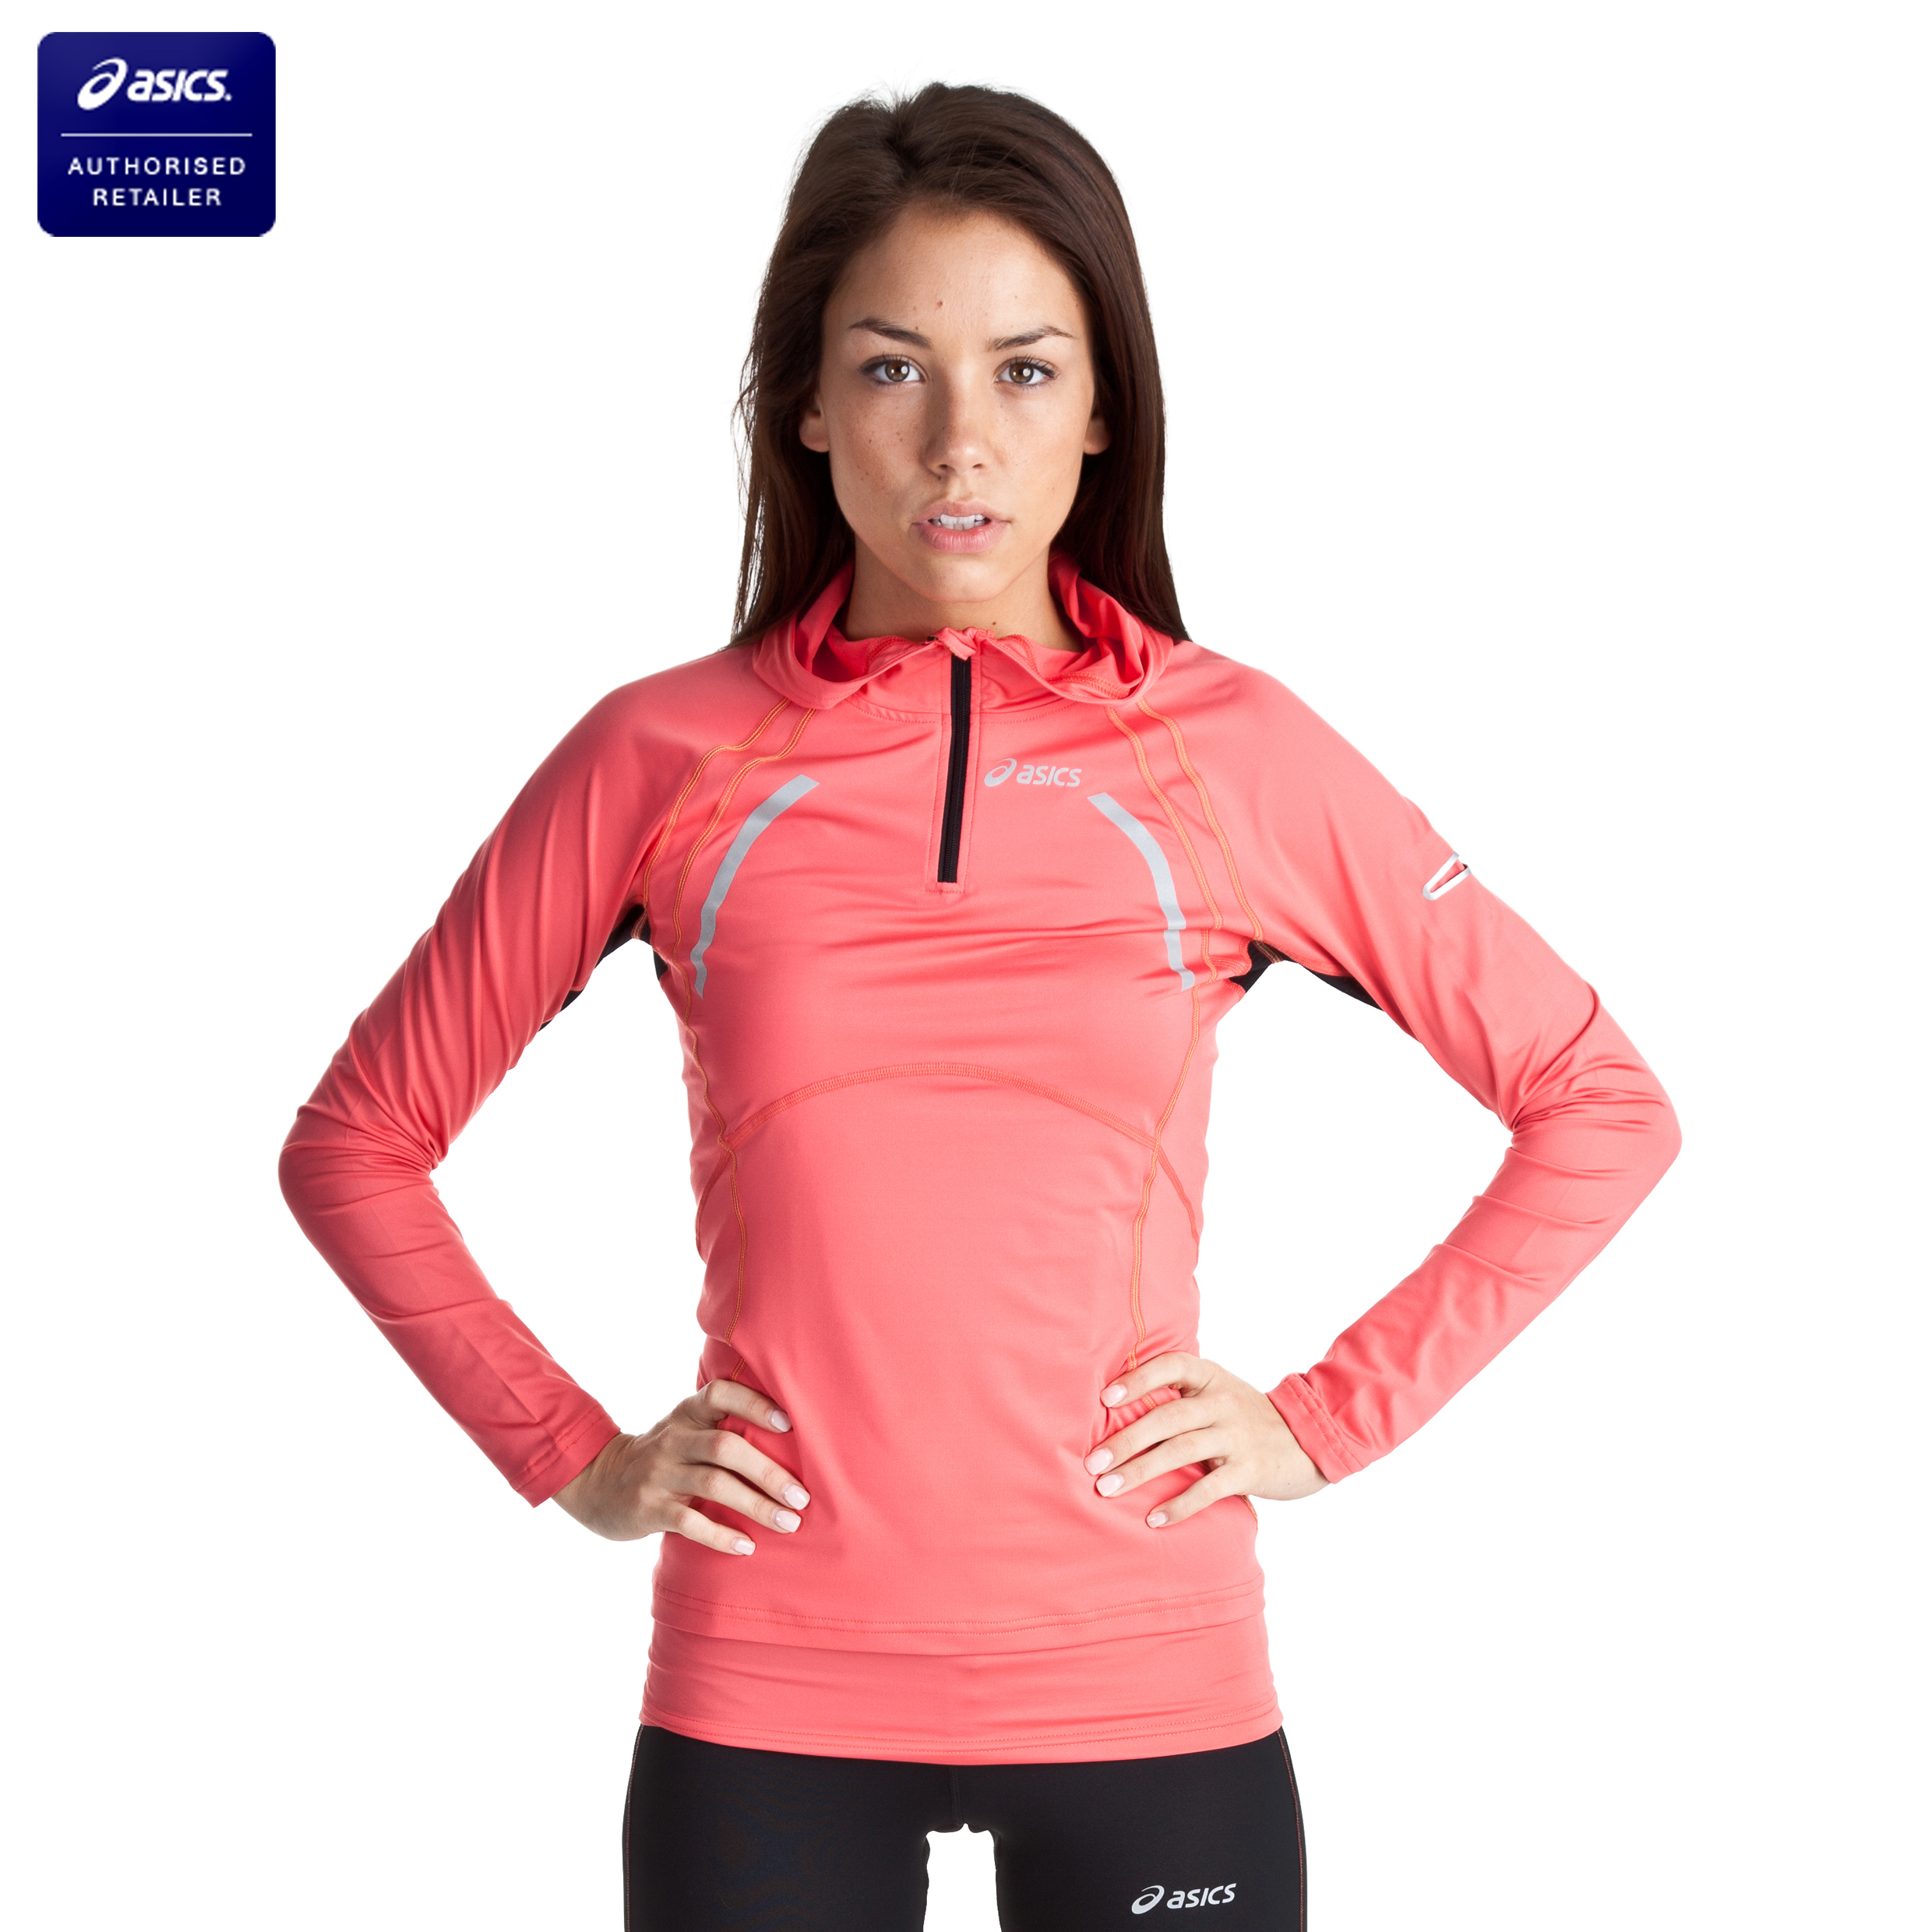 Asics Hoodie - Coral - Womens